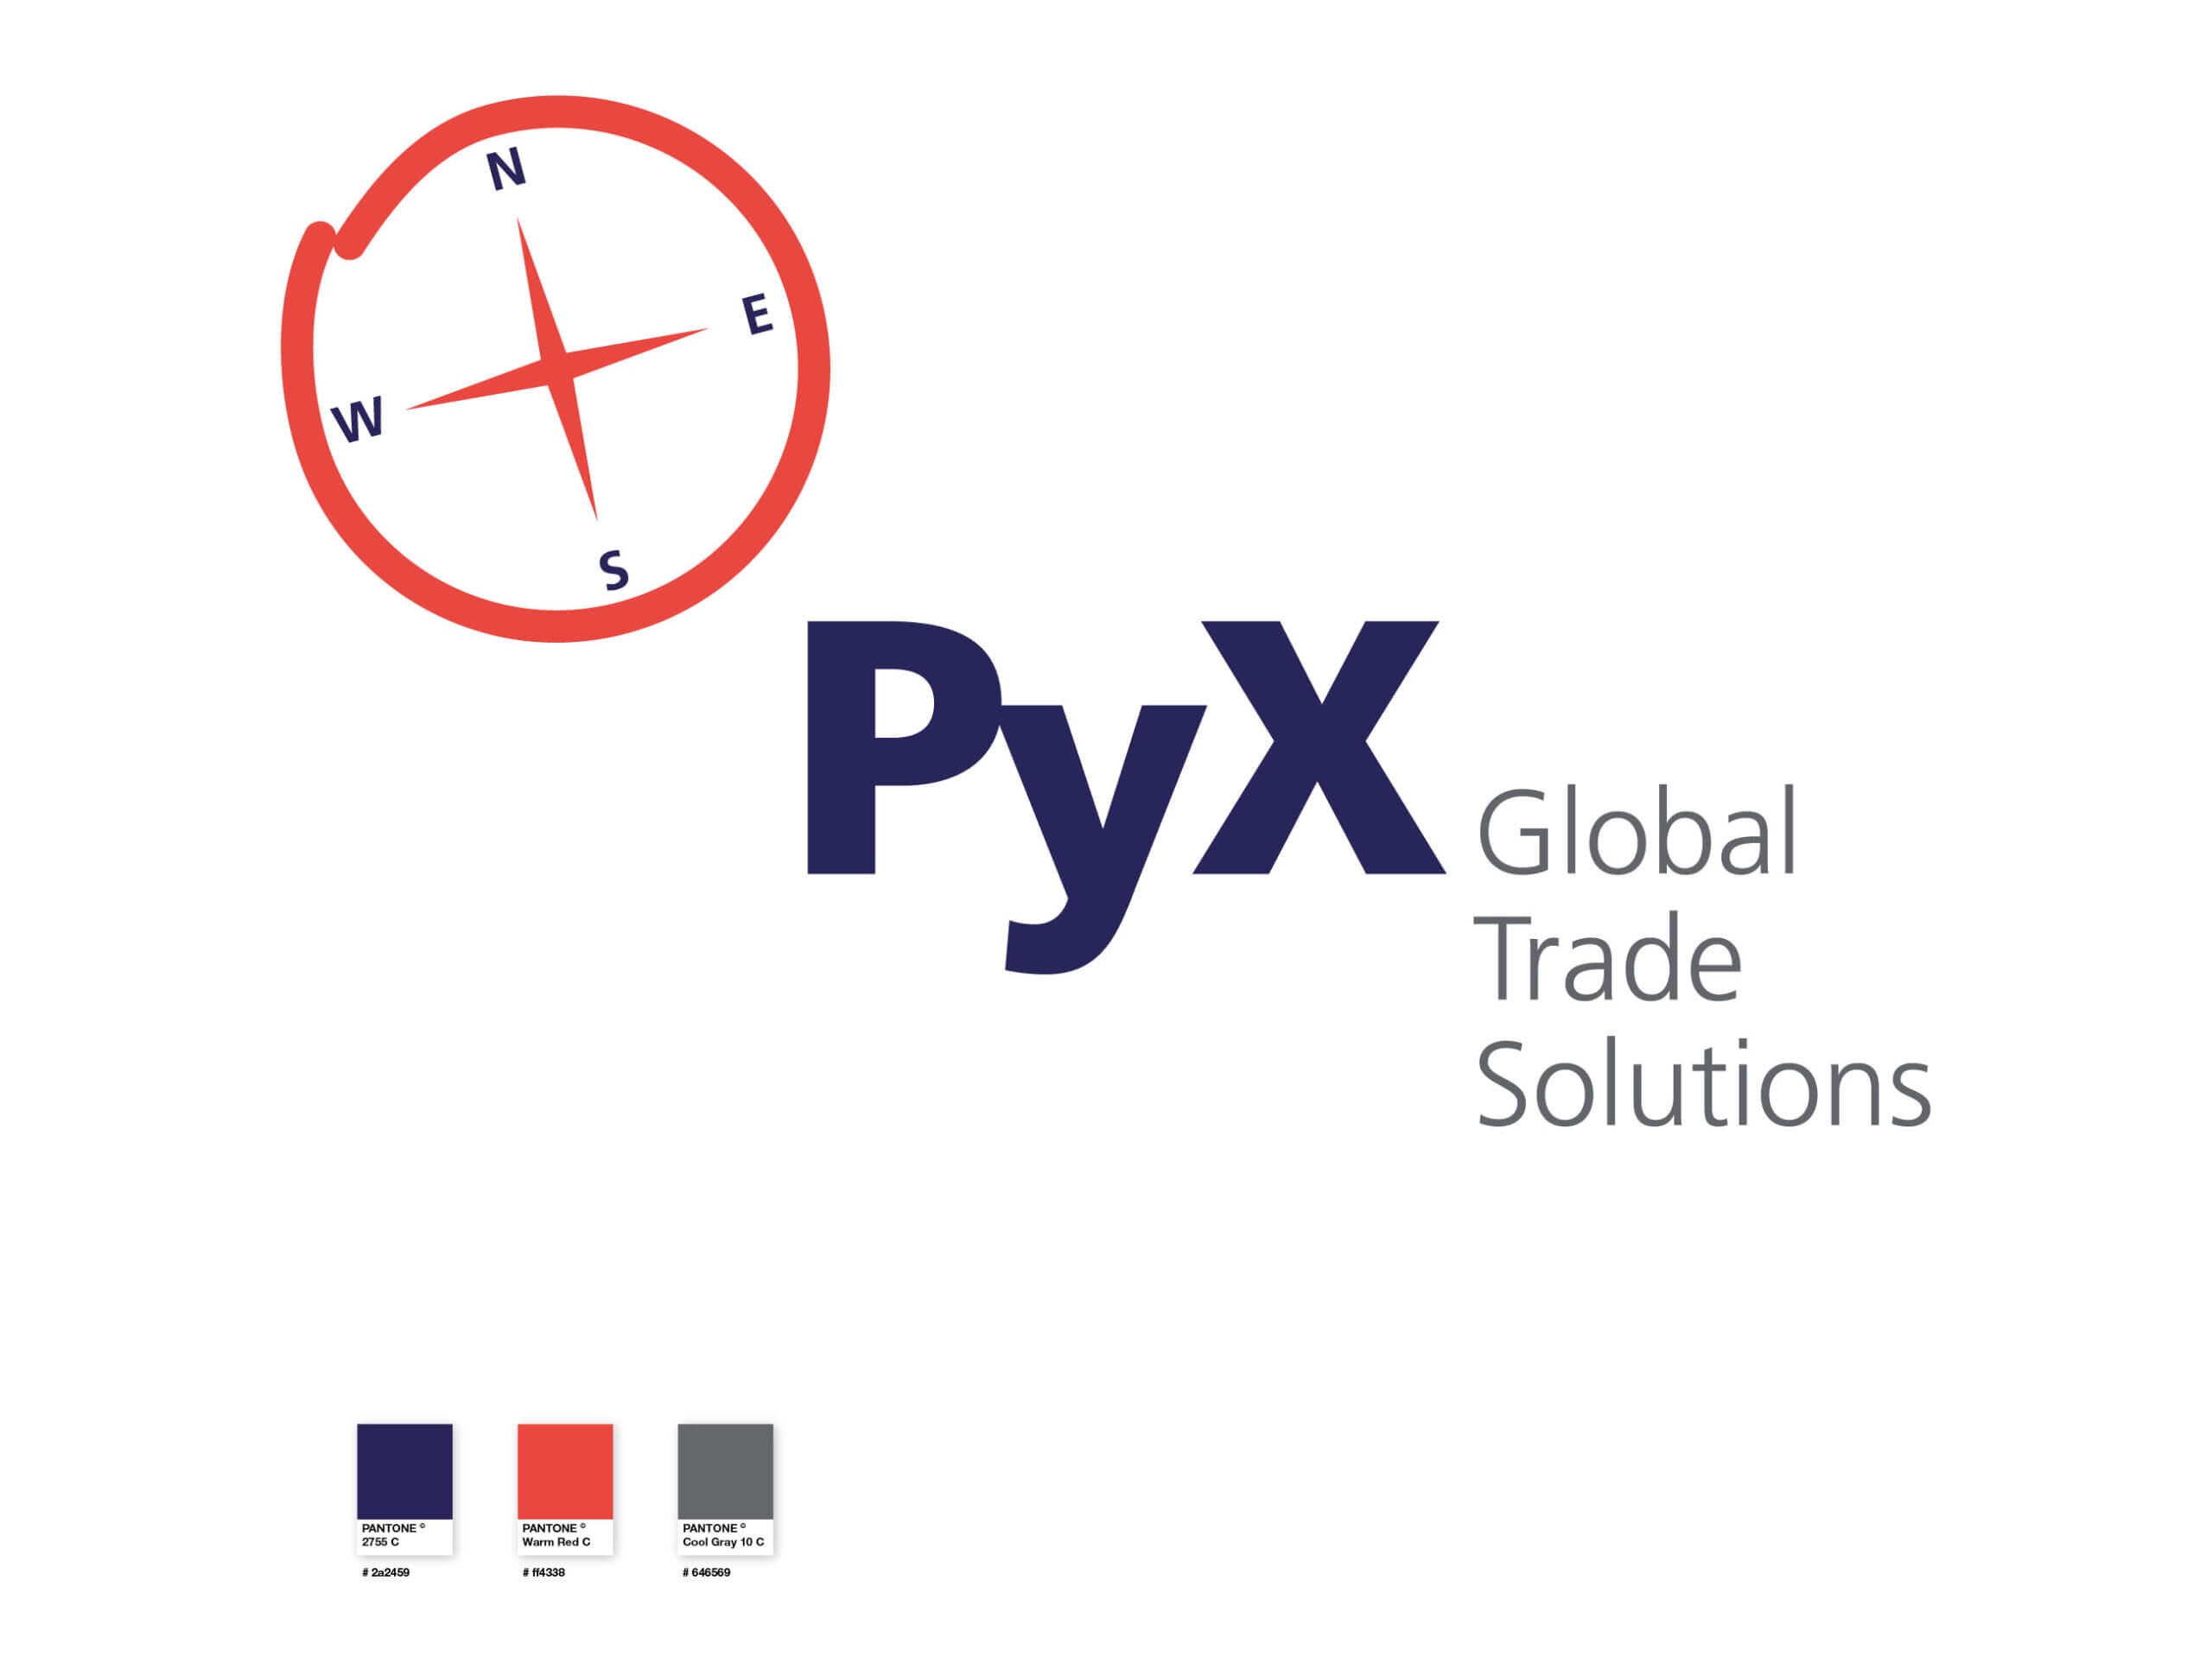 PyX Global Trade Solutions